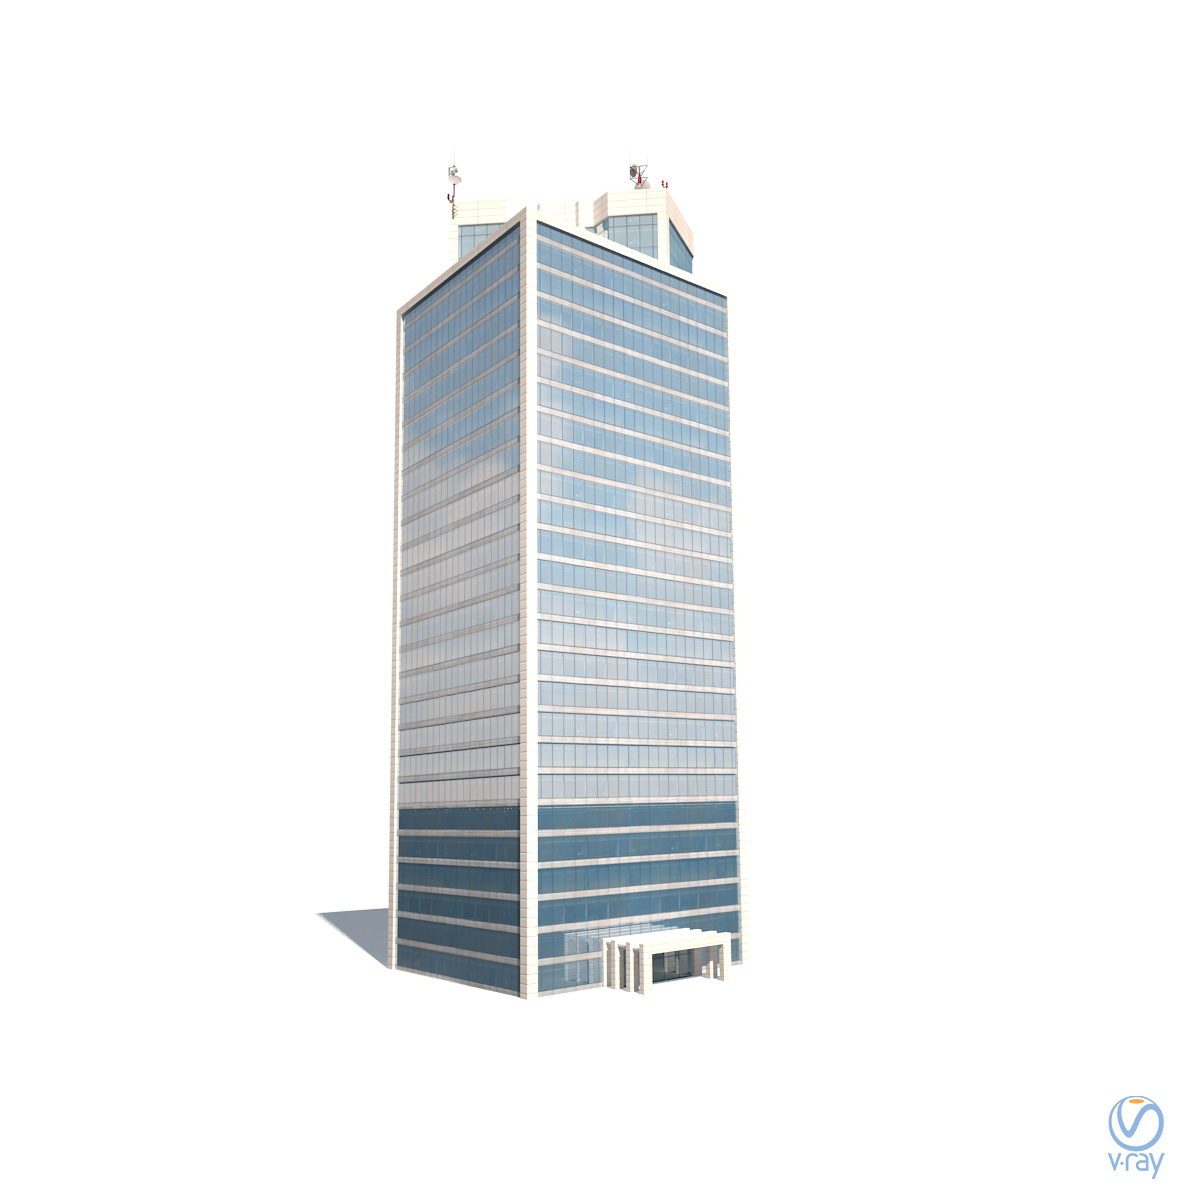 Skyscraper #12 Low Poly 3d Model